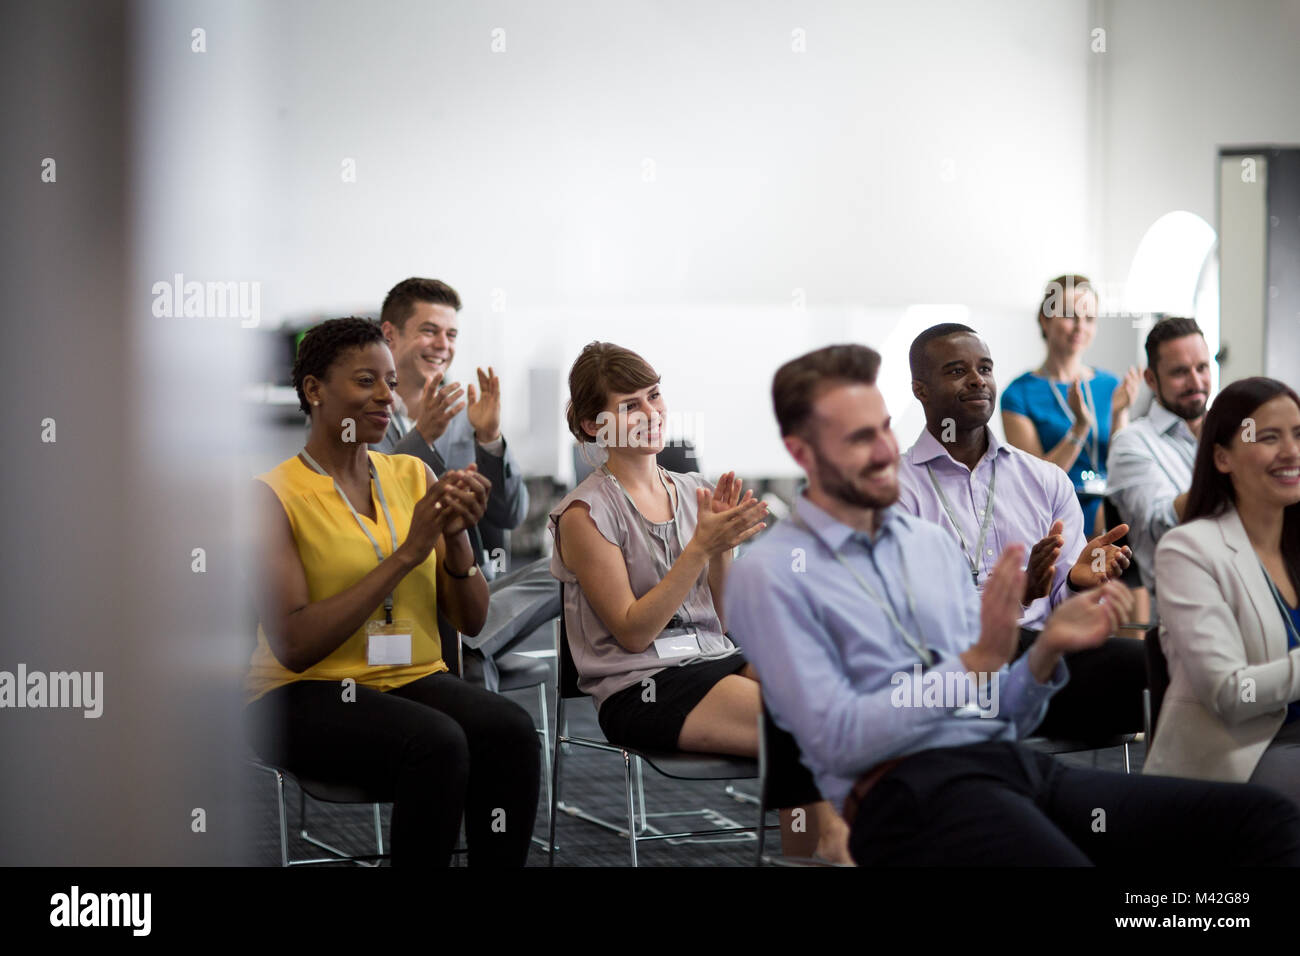 Audience at a conference applauding speaker - Stock Image